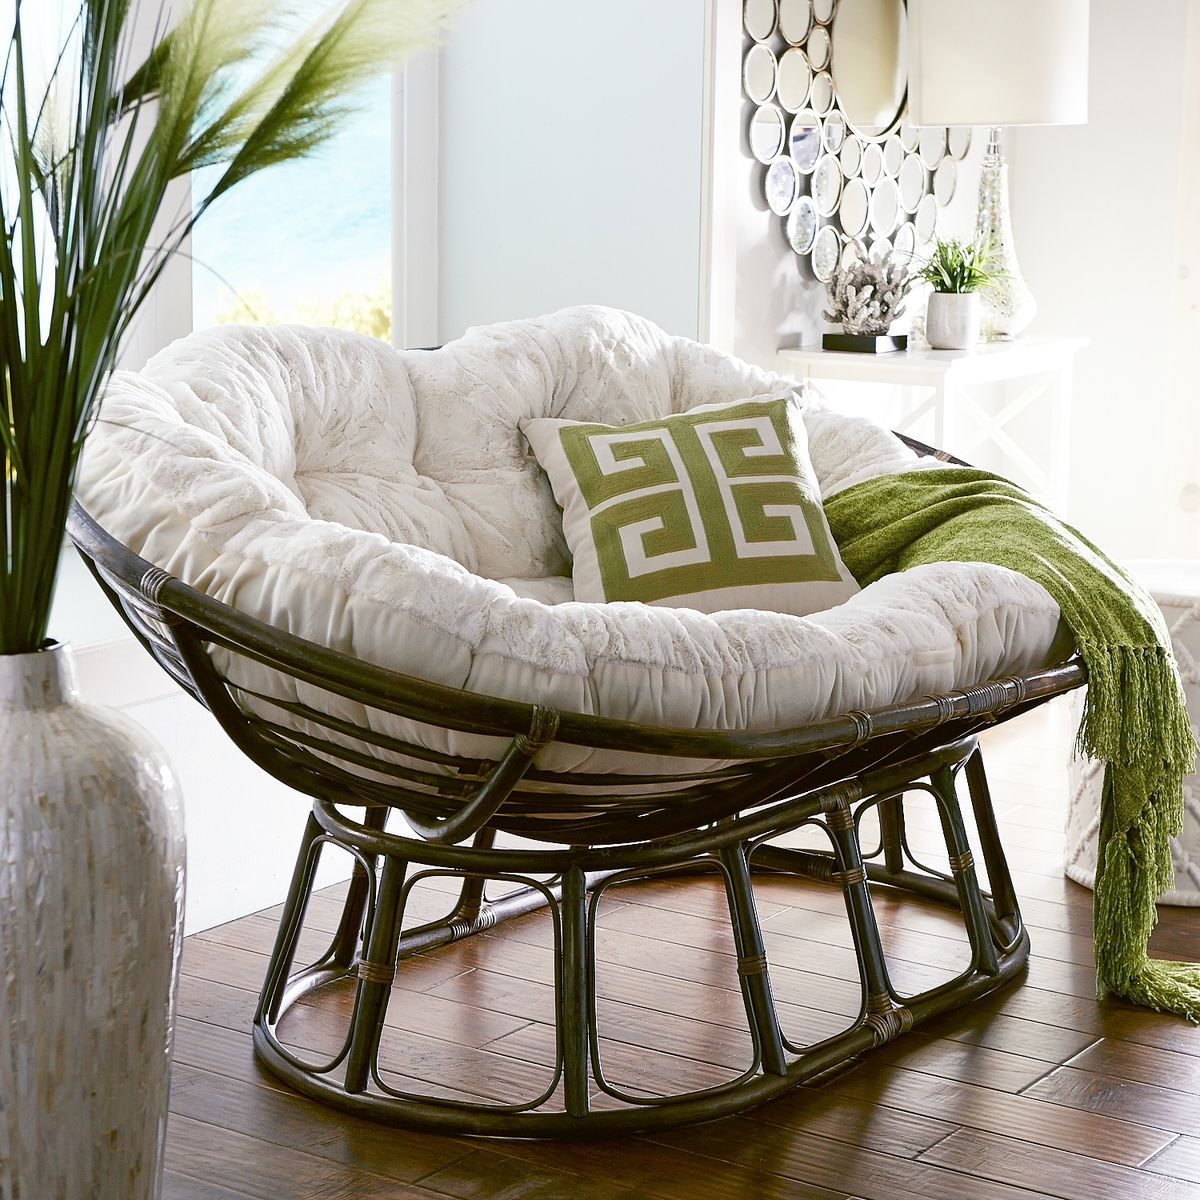 papasan double taupe chair frame taupe brown cushions and papasan double taupe chair frame